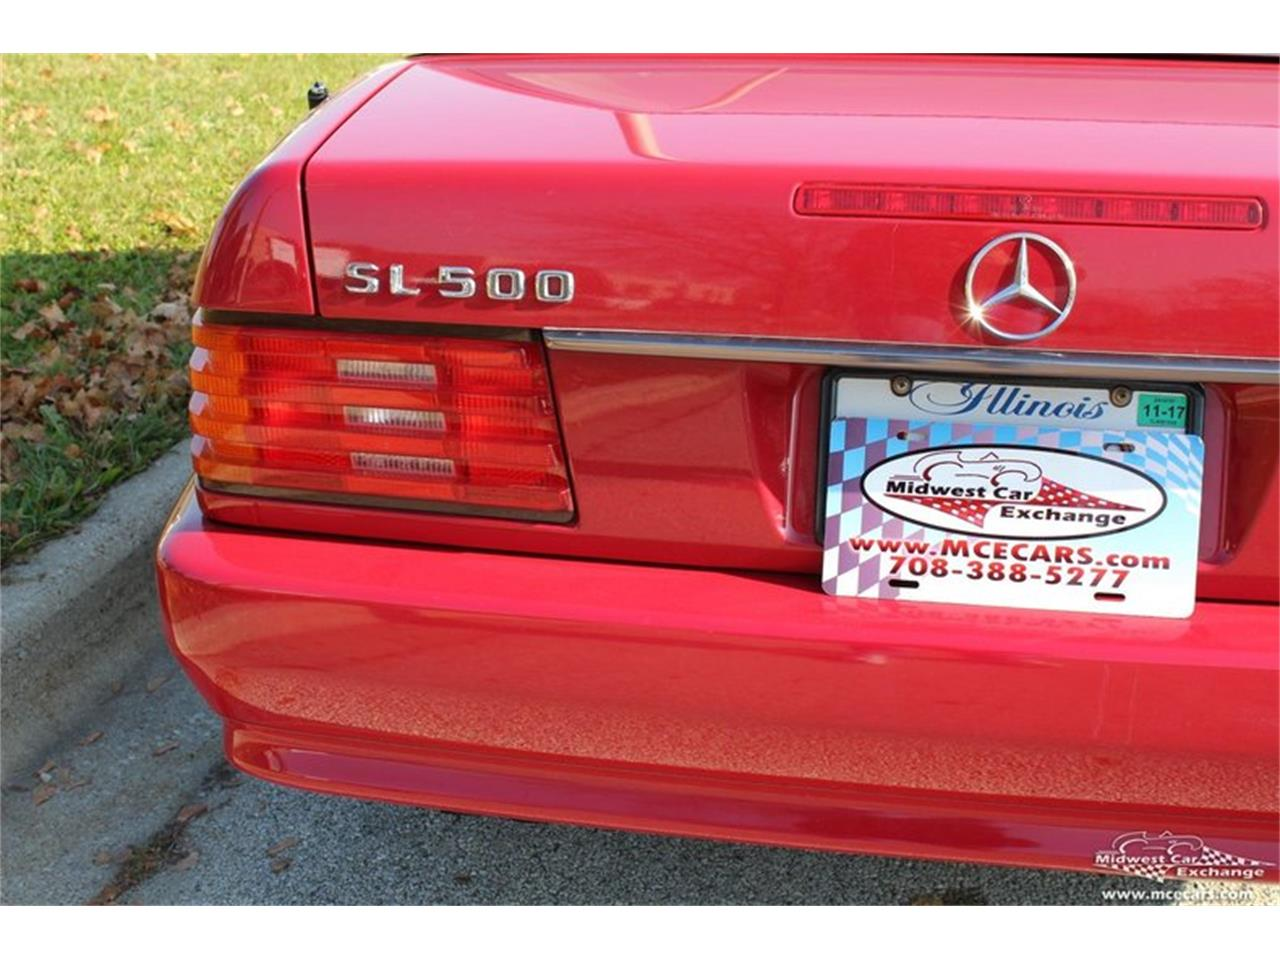 Large Picture of 1995 Mercedes-Benz SL500 located in Illinois Offered by Midwest Car Exchange - M42A